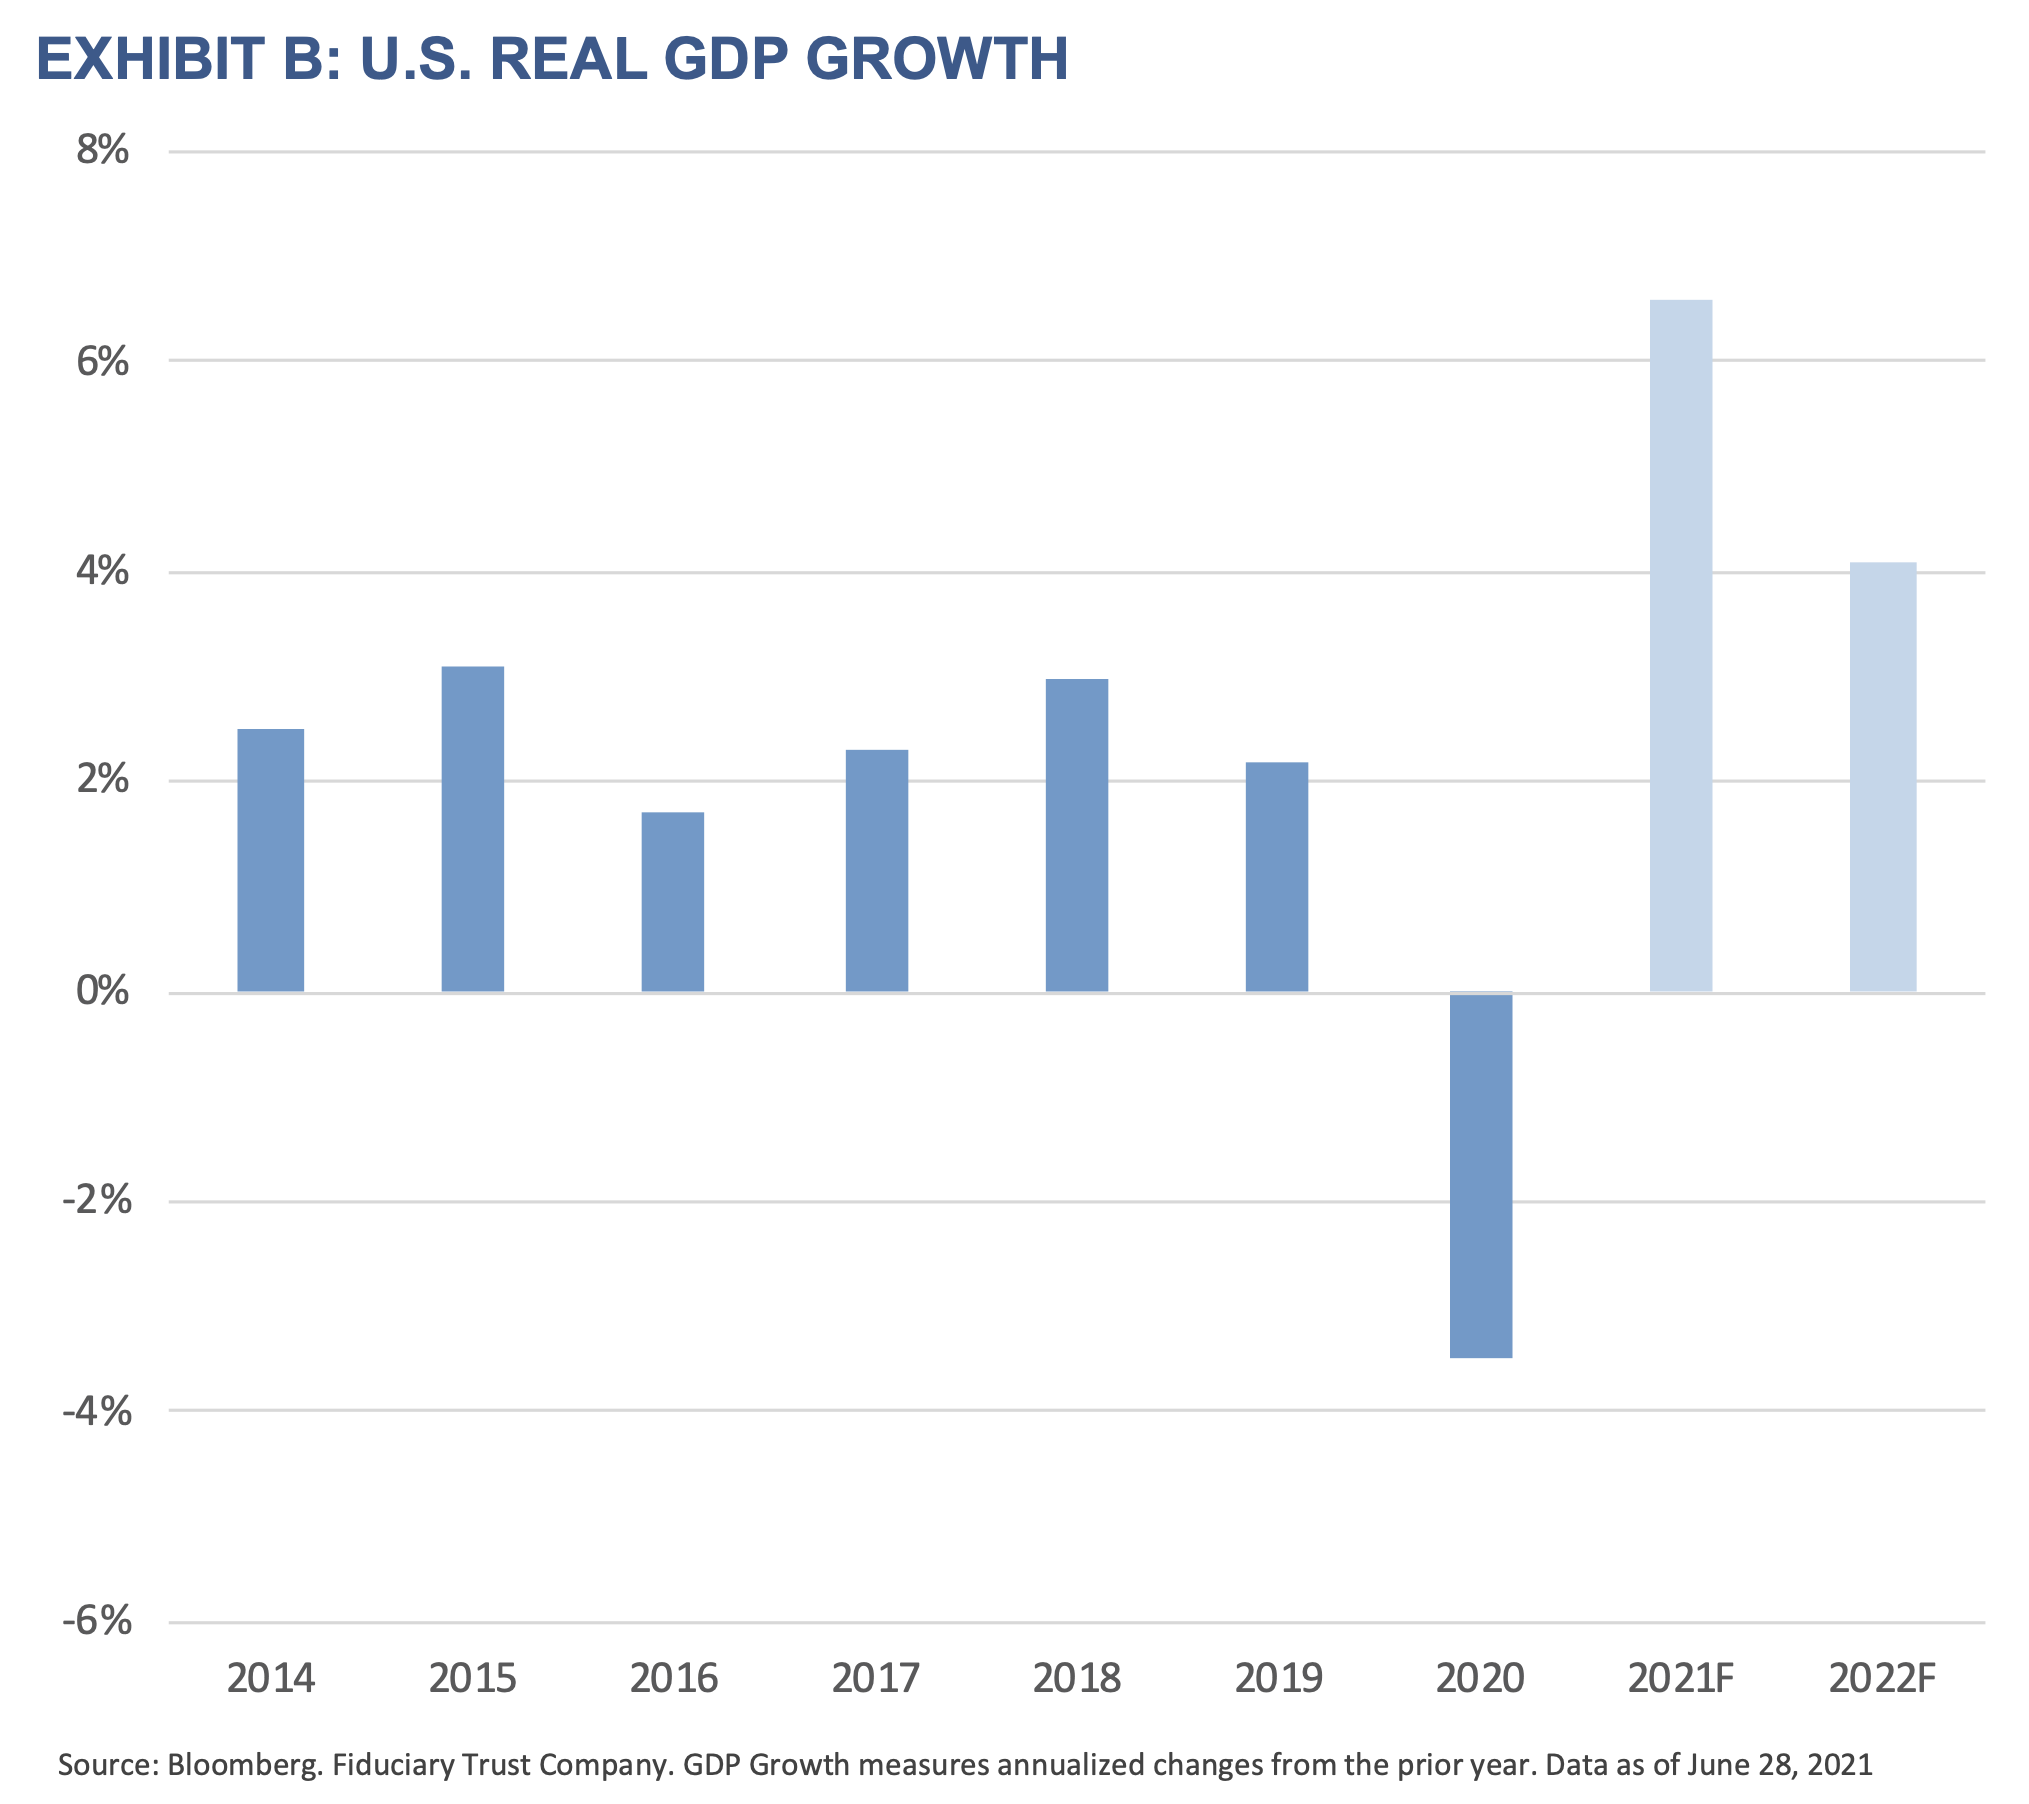 2021 Q3 Outlook - Exhibit B - U.S. Real GDP Growth